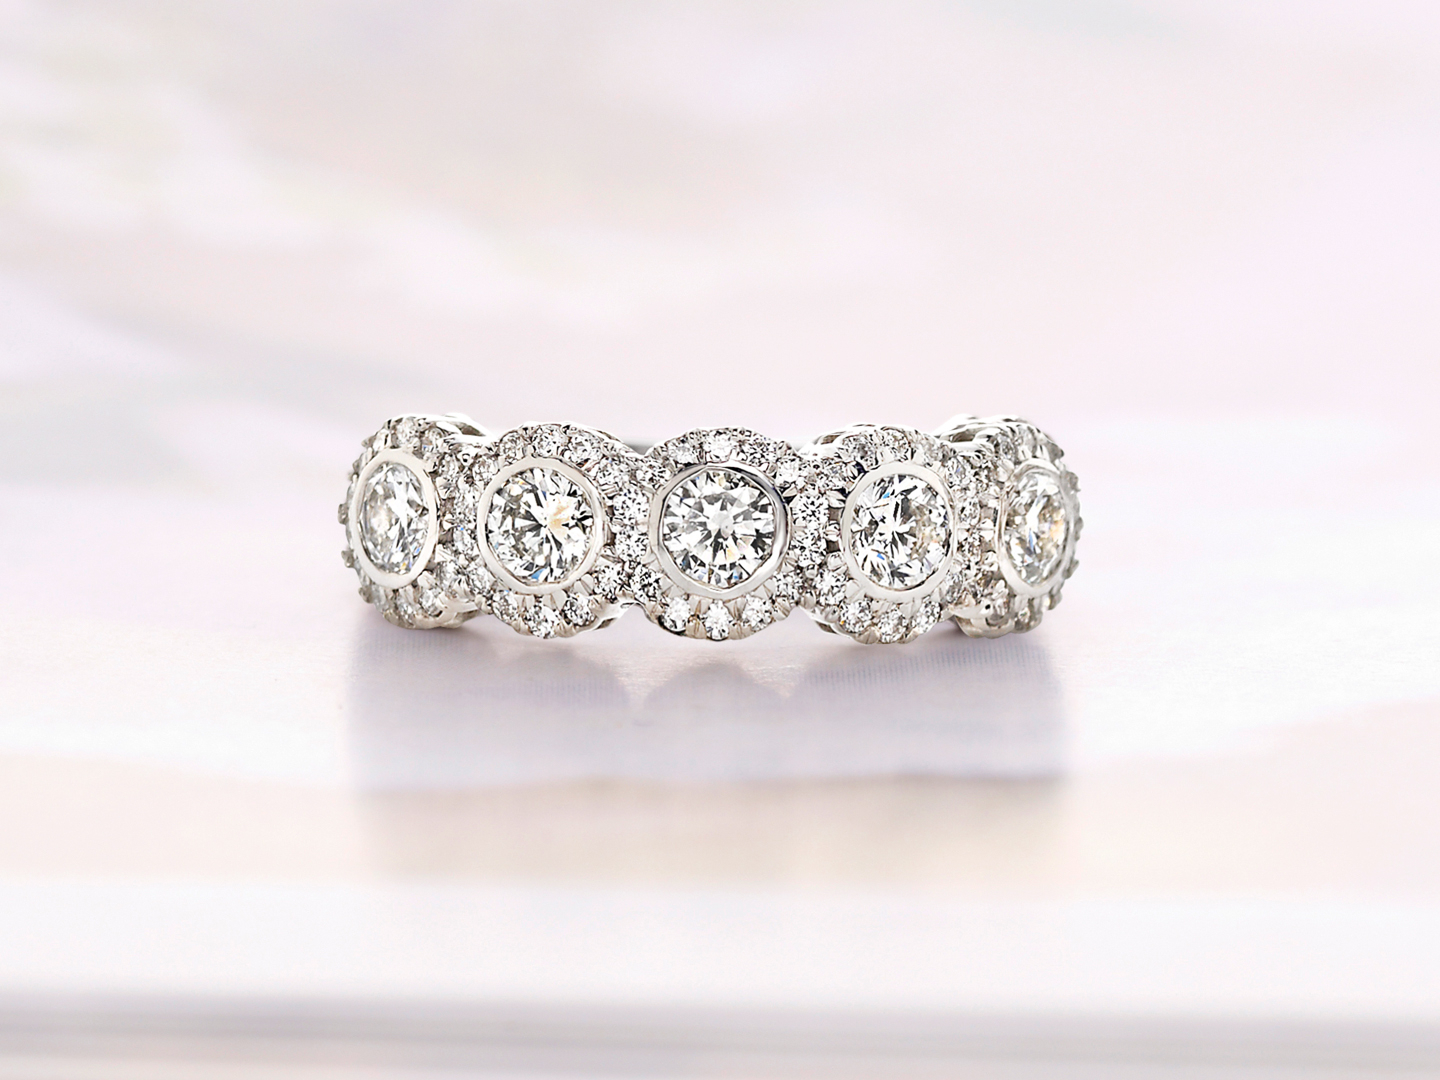 Beautiful Bezel Set Diamond Rings | Brilliant Earth Regarding Best And Newest Princess Cut Diamond Five Stone Anniversary Bands In White Gold (View 15 of 25)